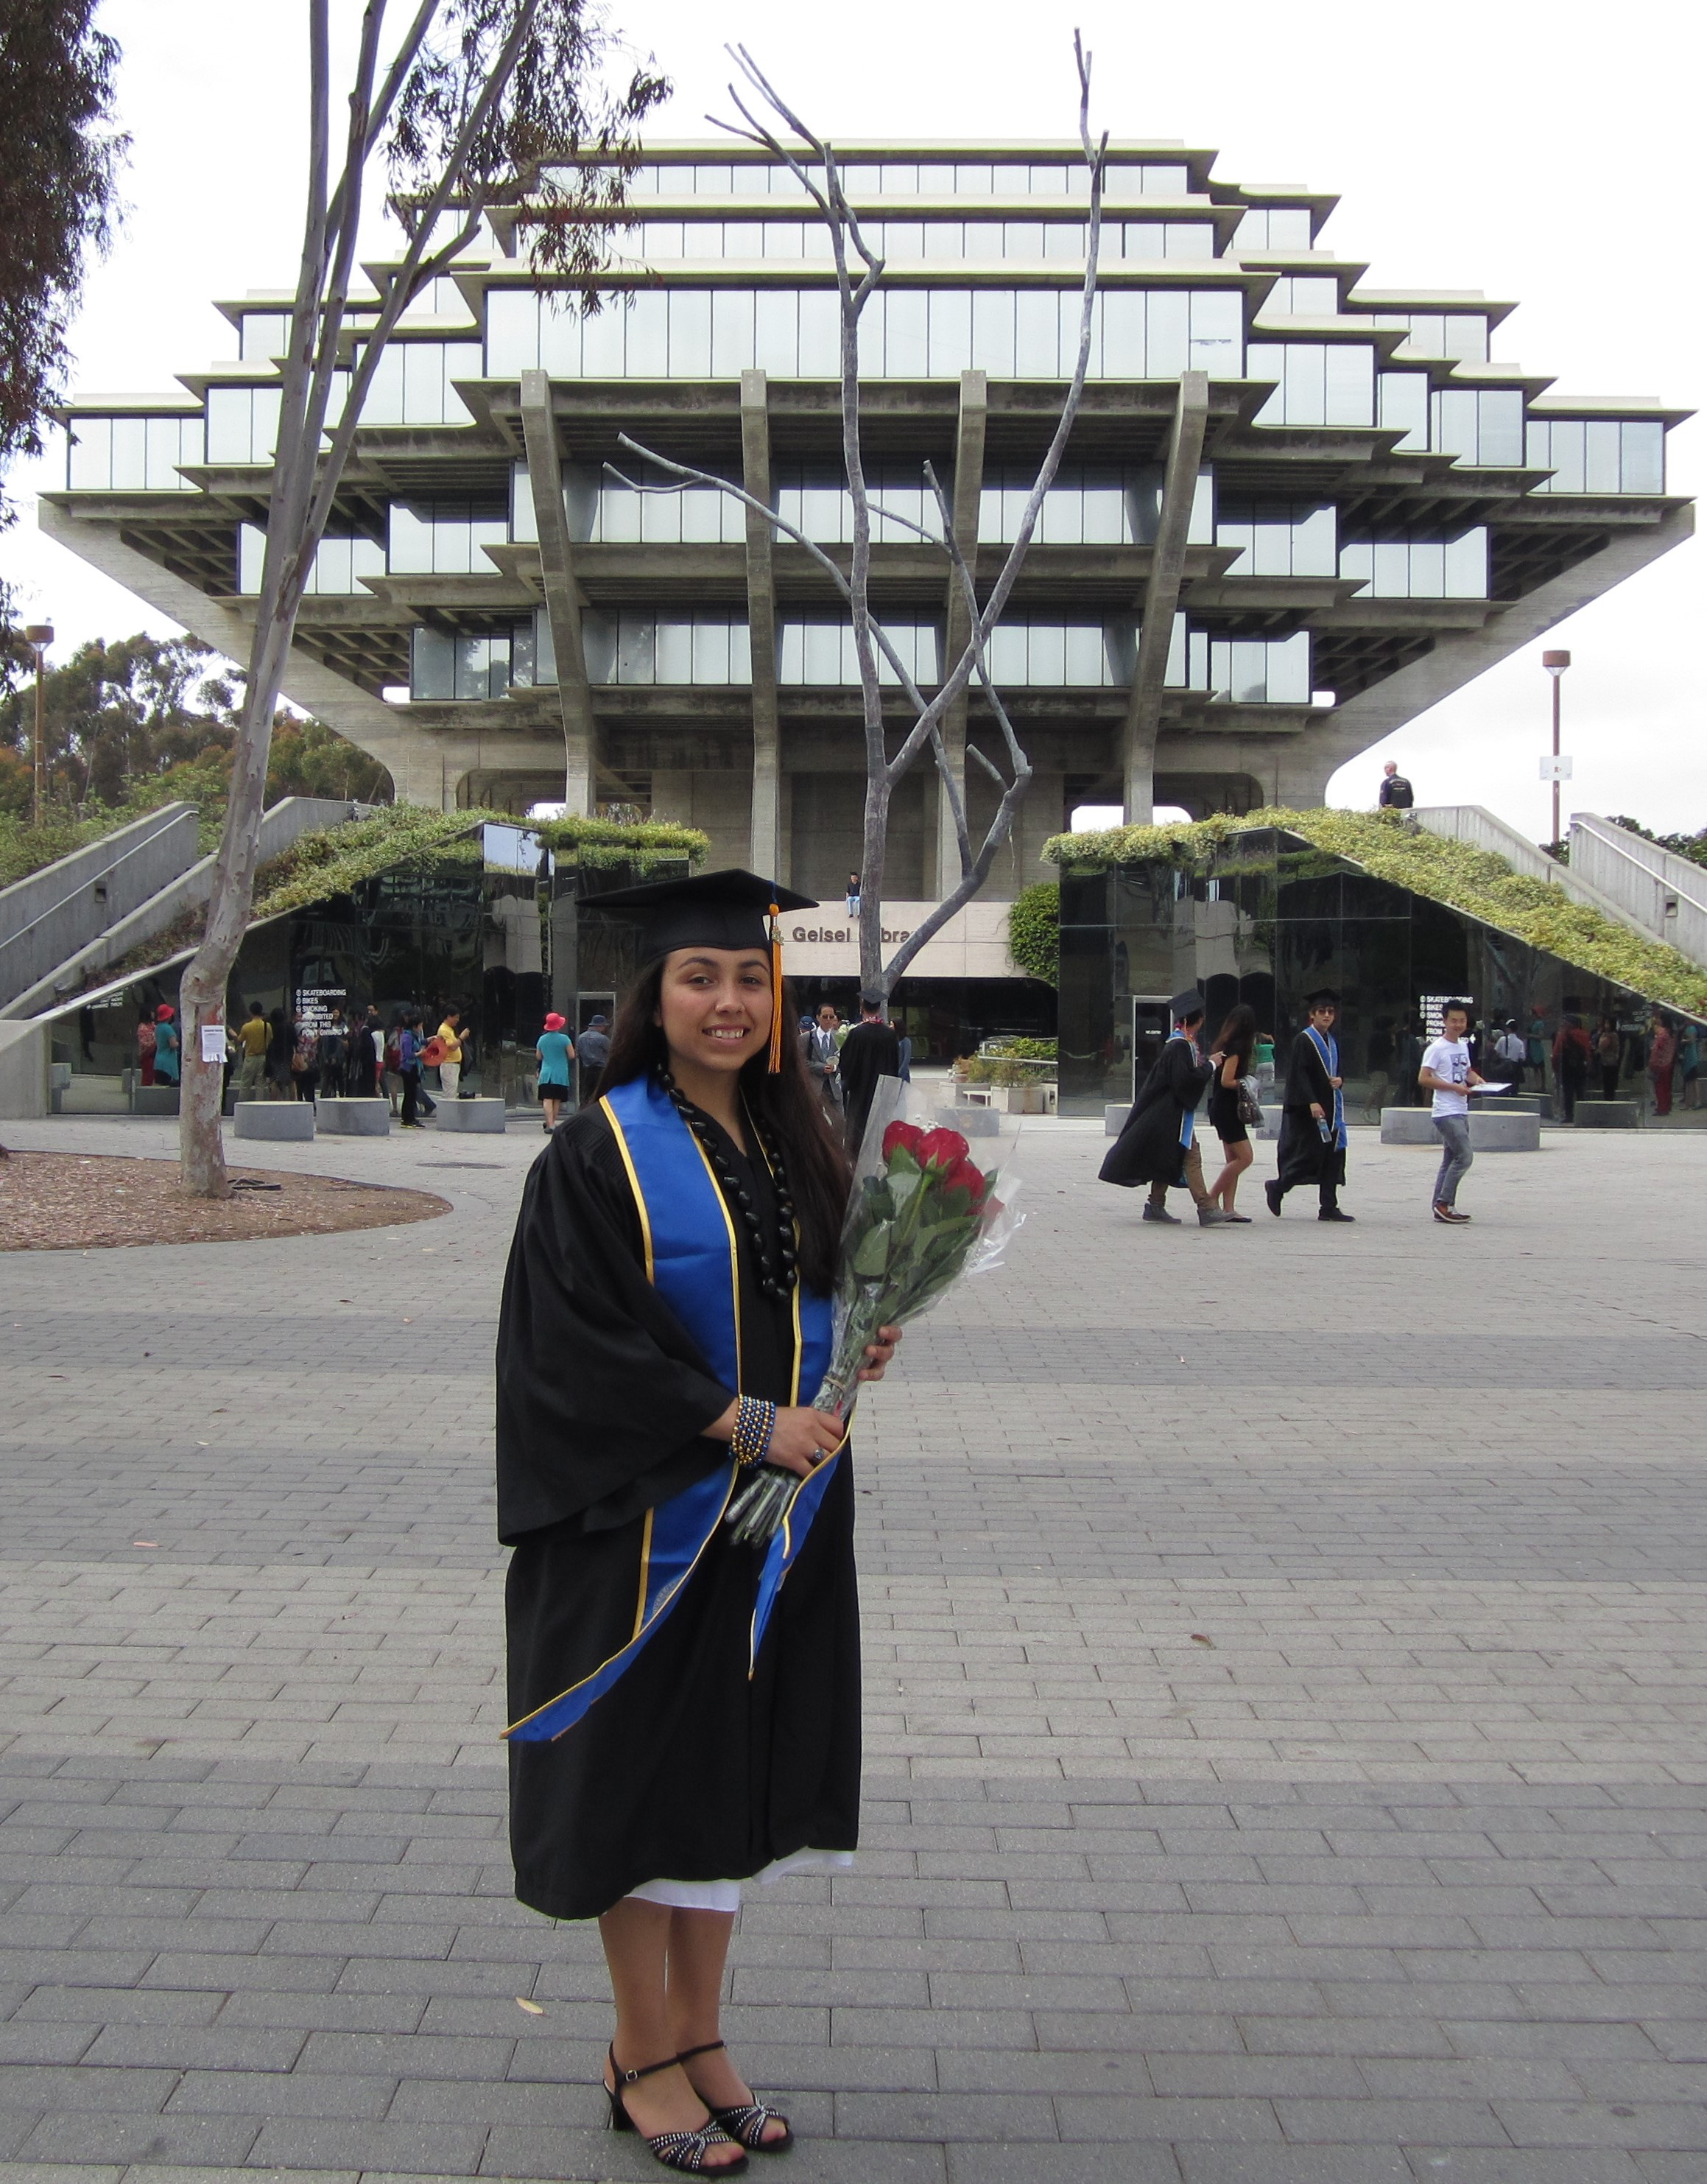 Graduated from UCSD